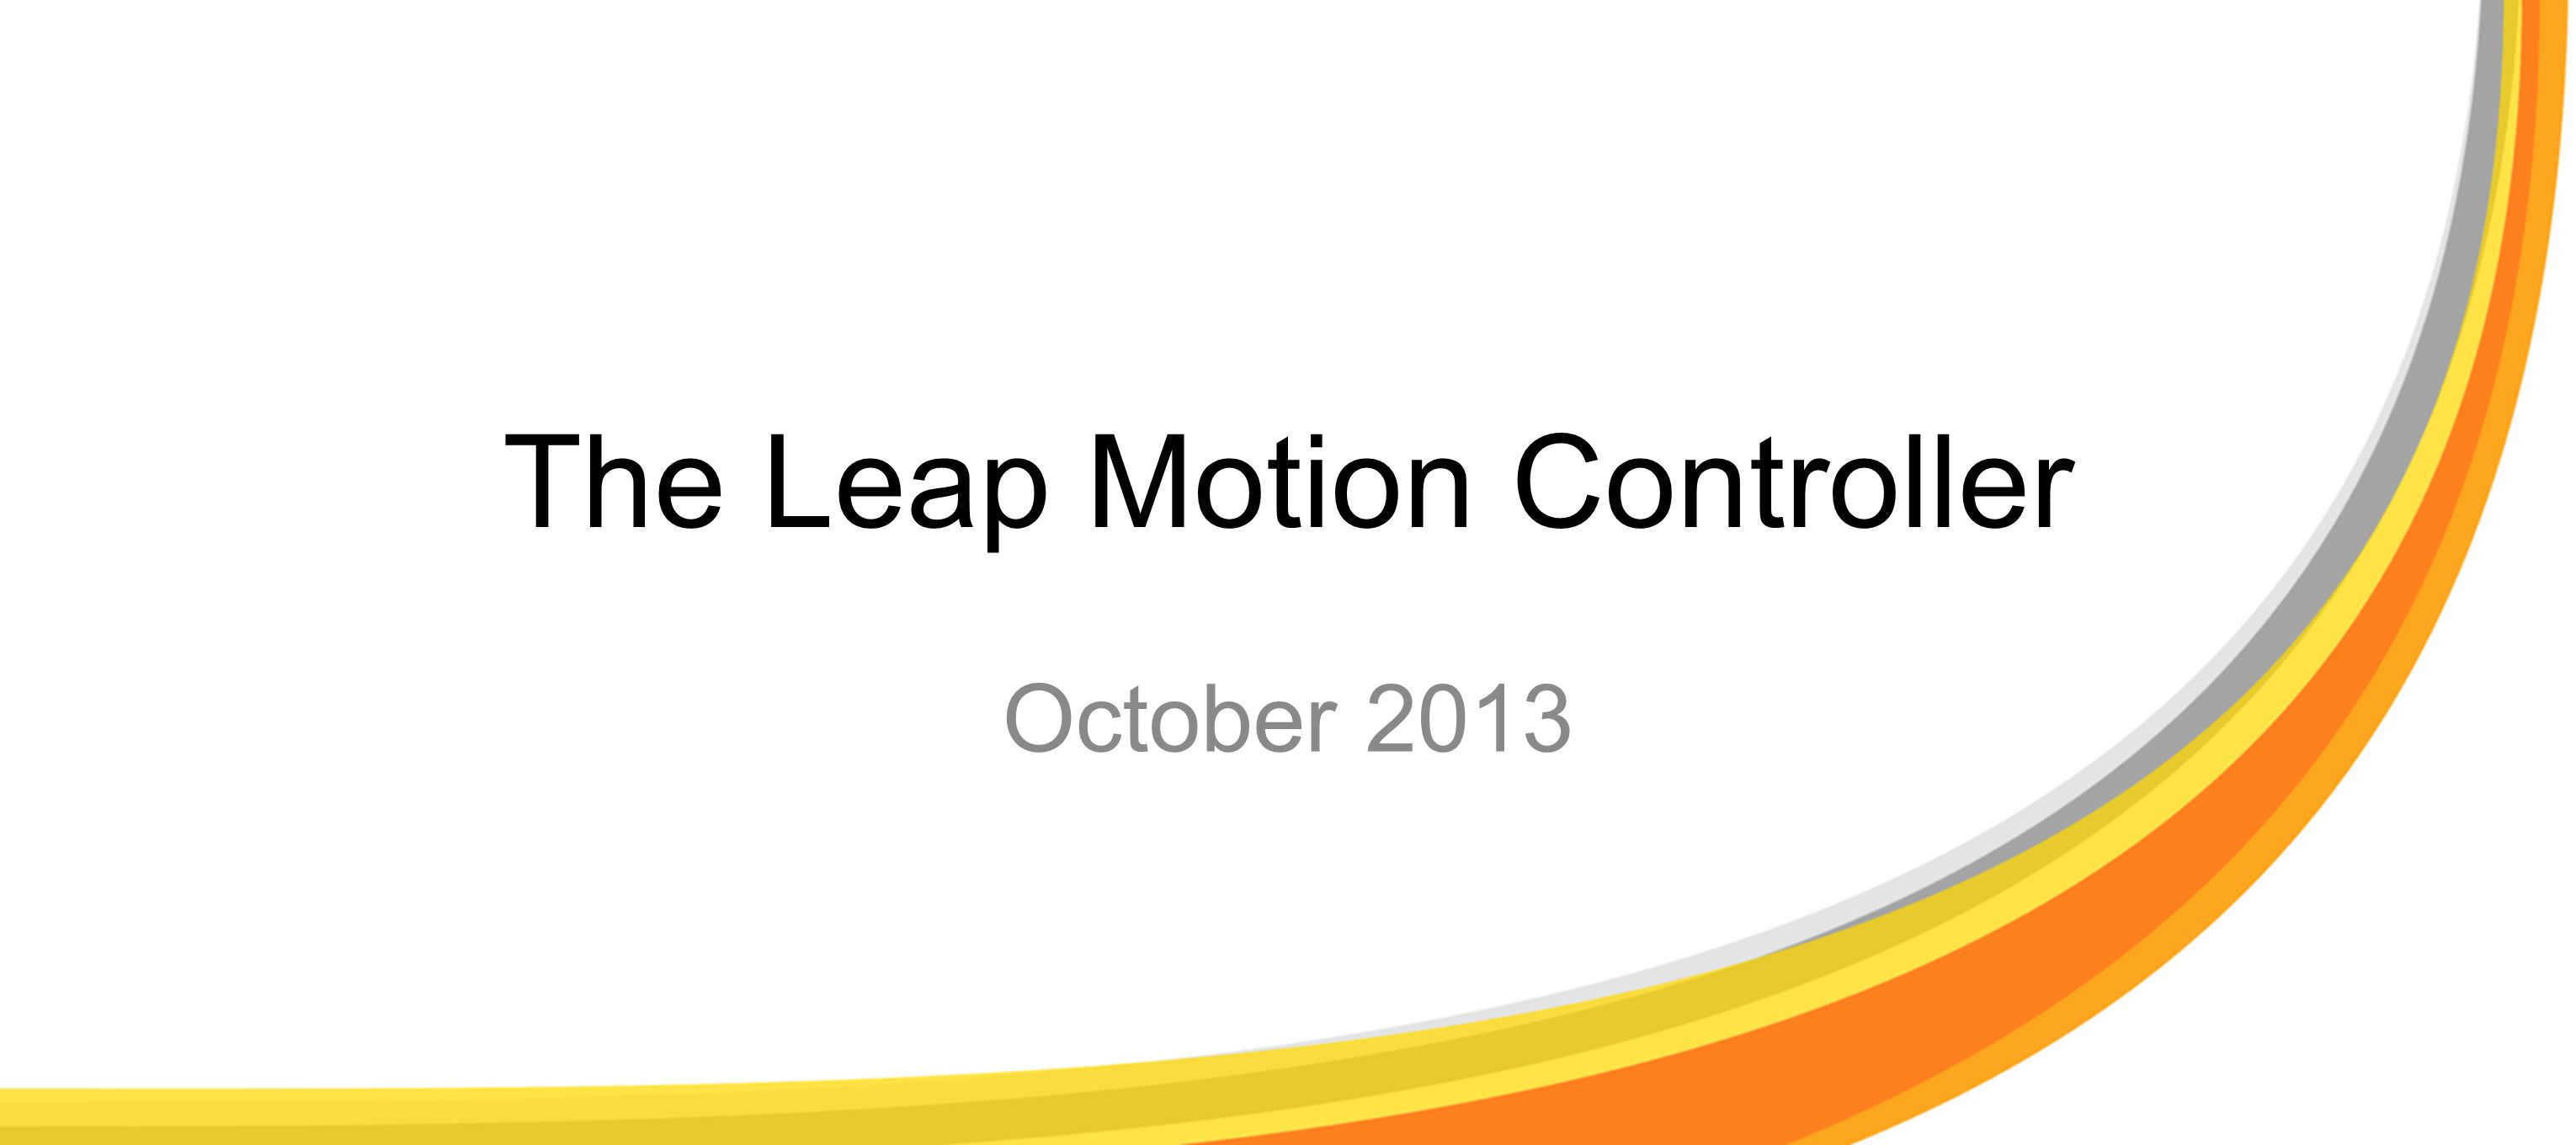 The Leap Motion Controller October 2013